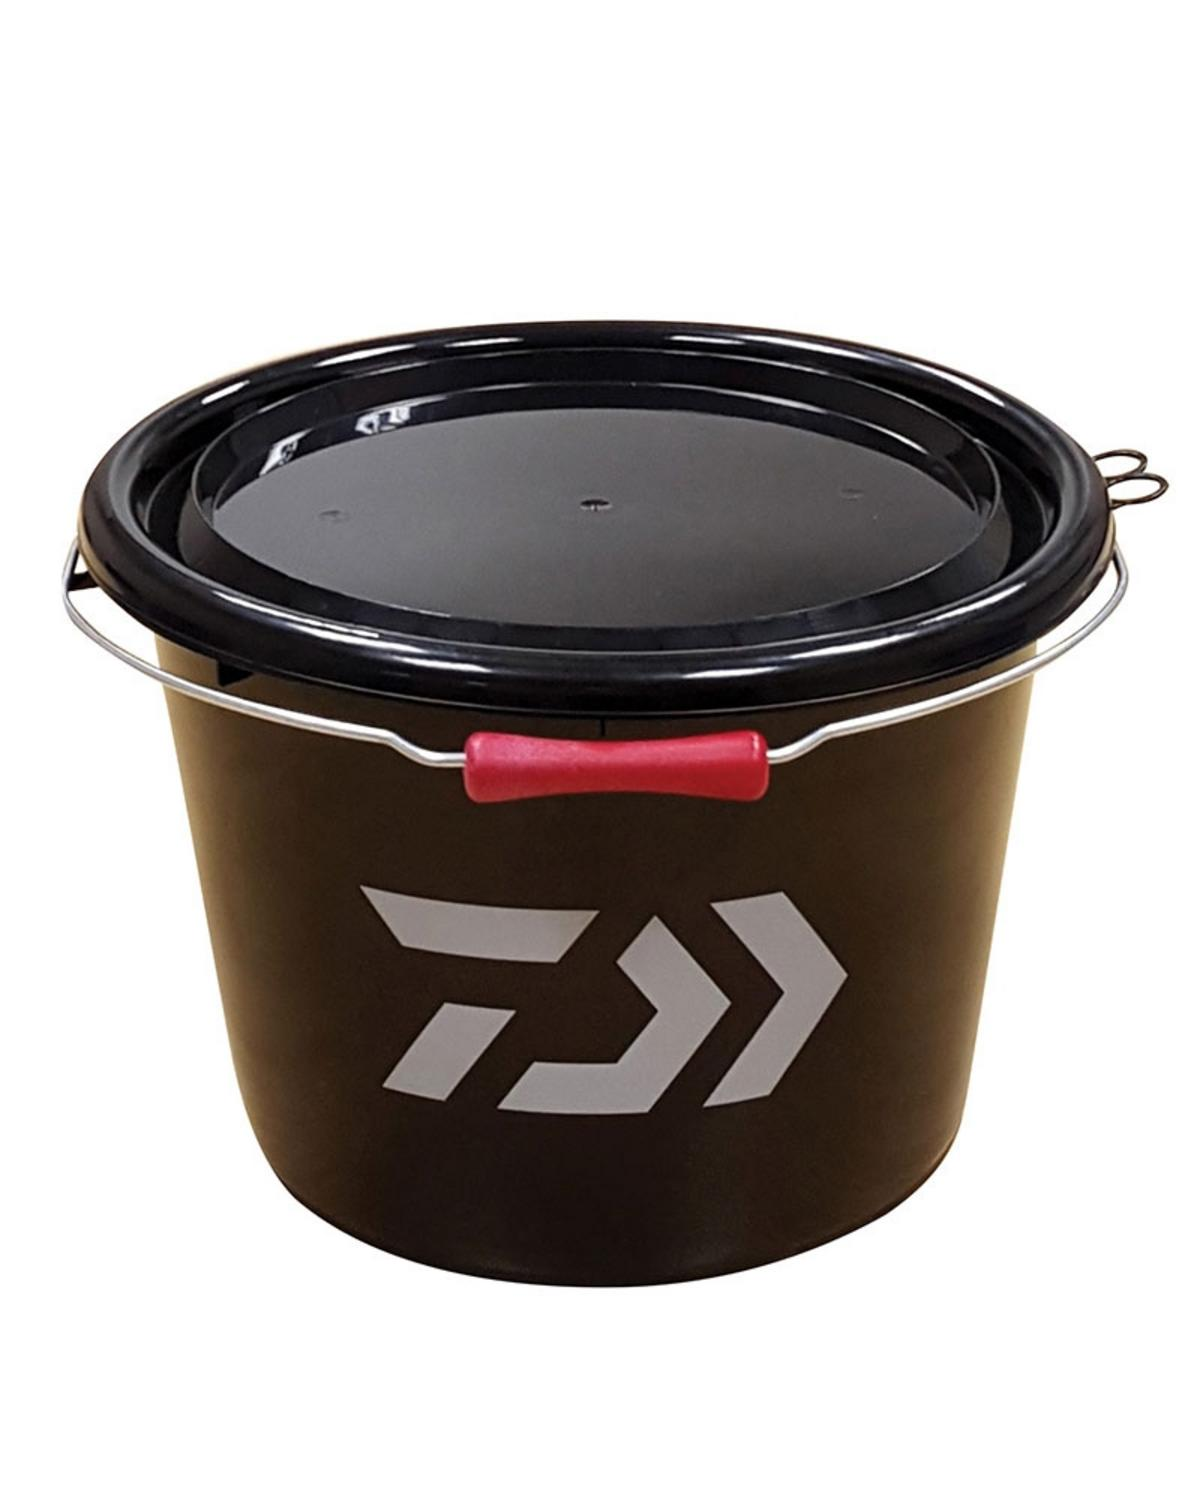 NEW DAIWA BAIT BUCKET MODEL NO. DB18L